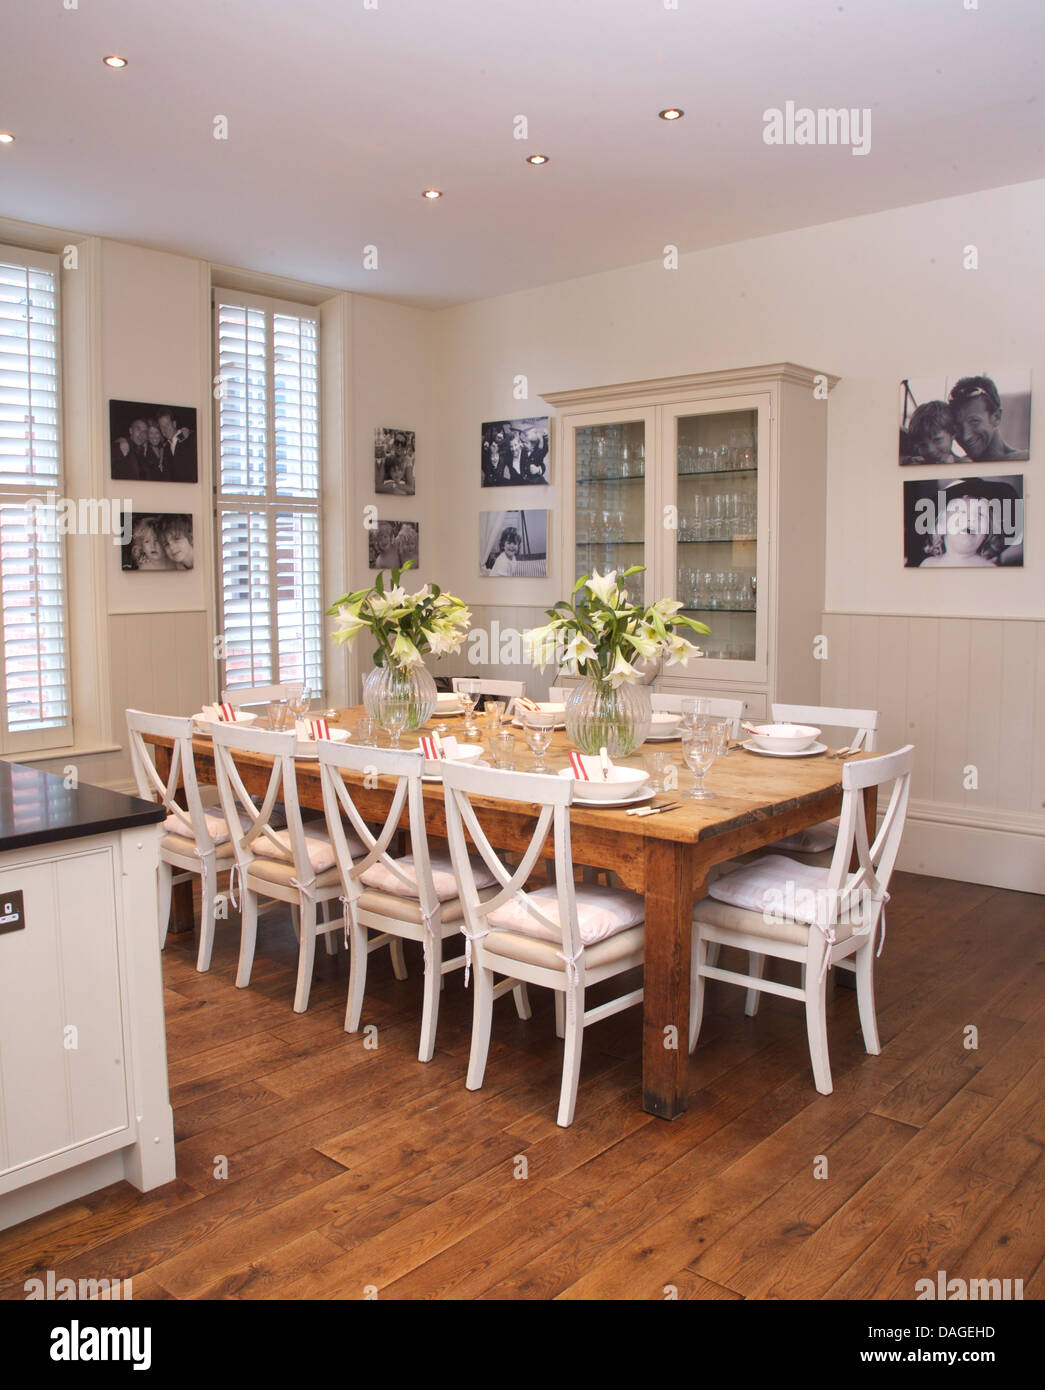 Picture of: White Chairs At Simple Wood Table In Modern White Kitchen Dining Room Stock Photo Alamy